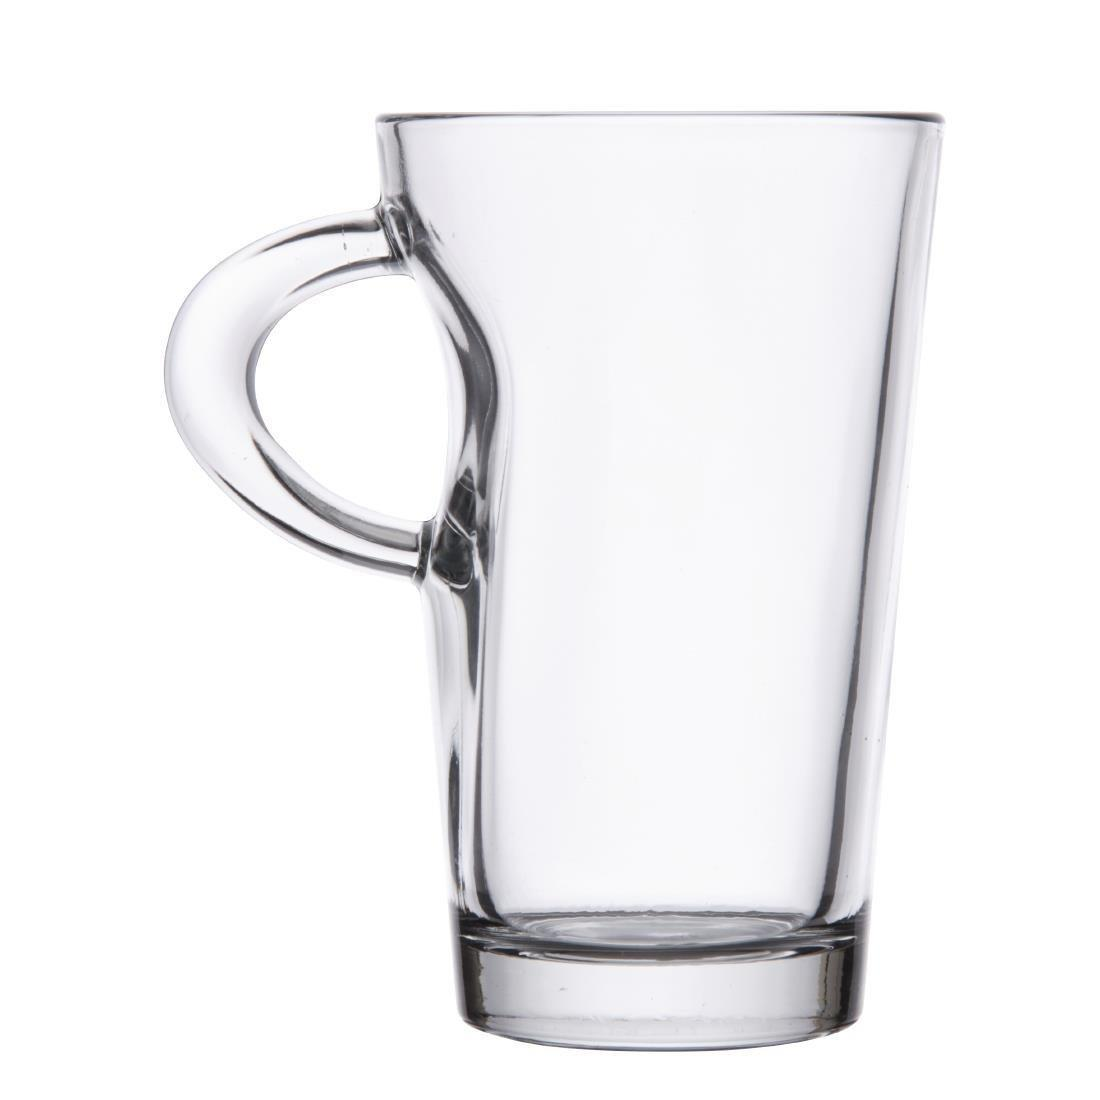 Glass Elba Coffee Mug - 250ml 9oz (Box 6) - CD120